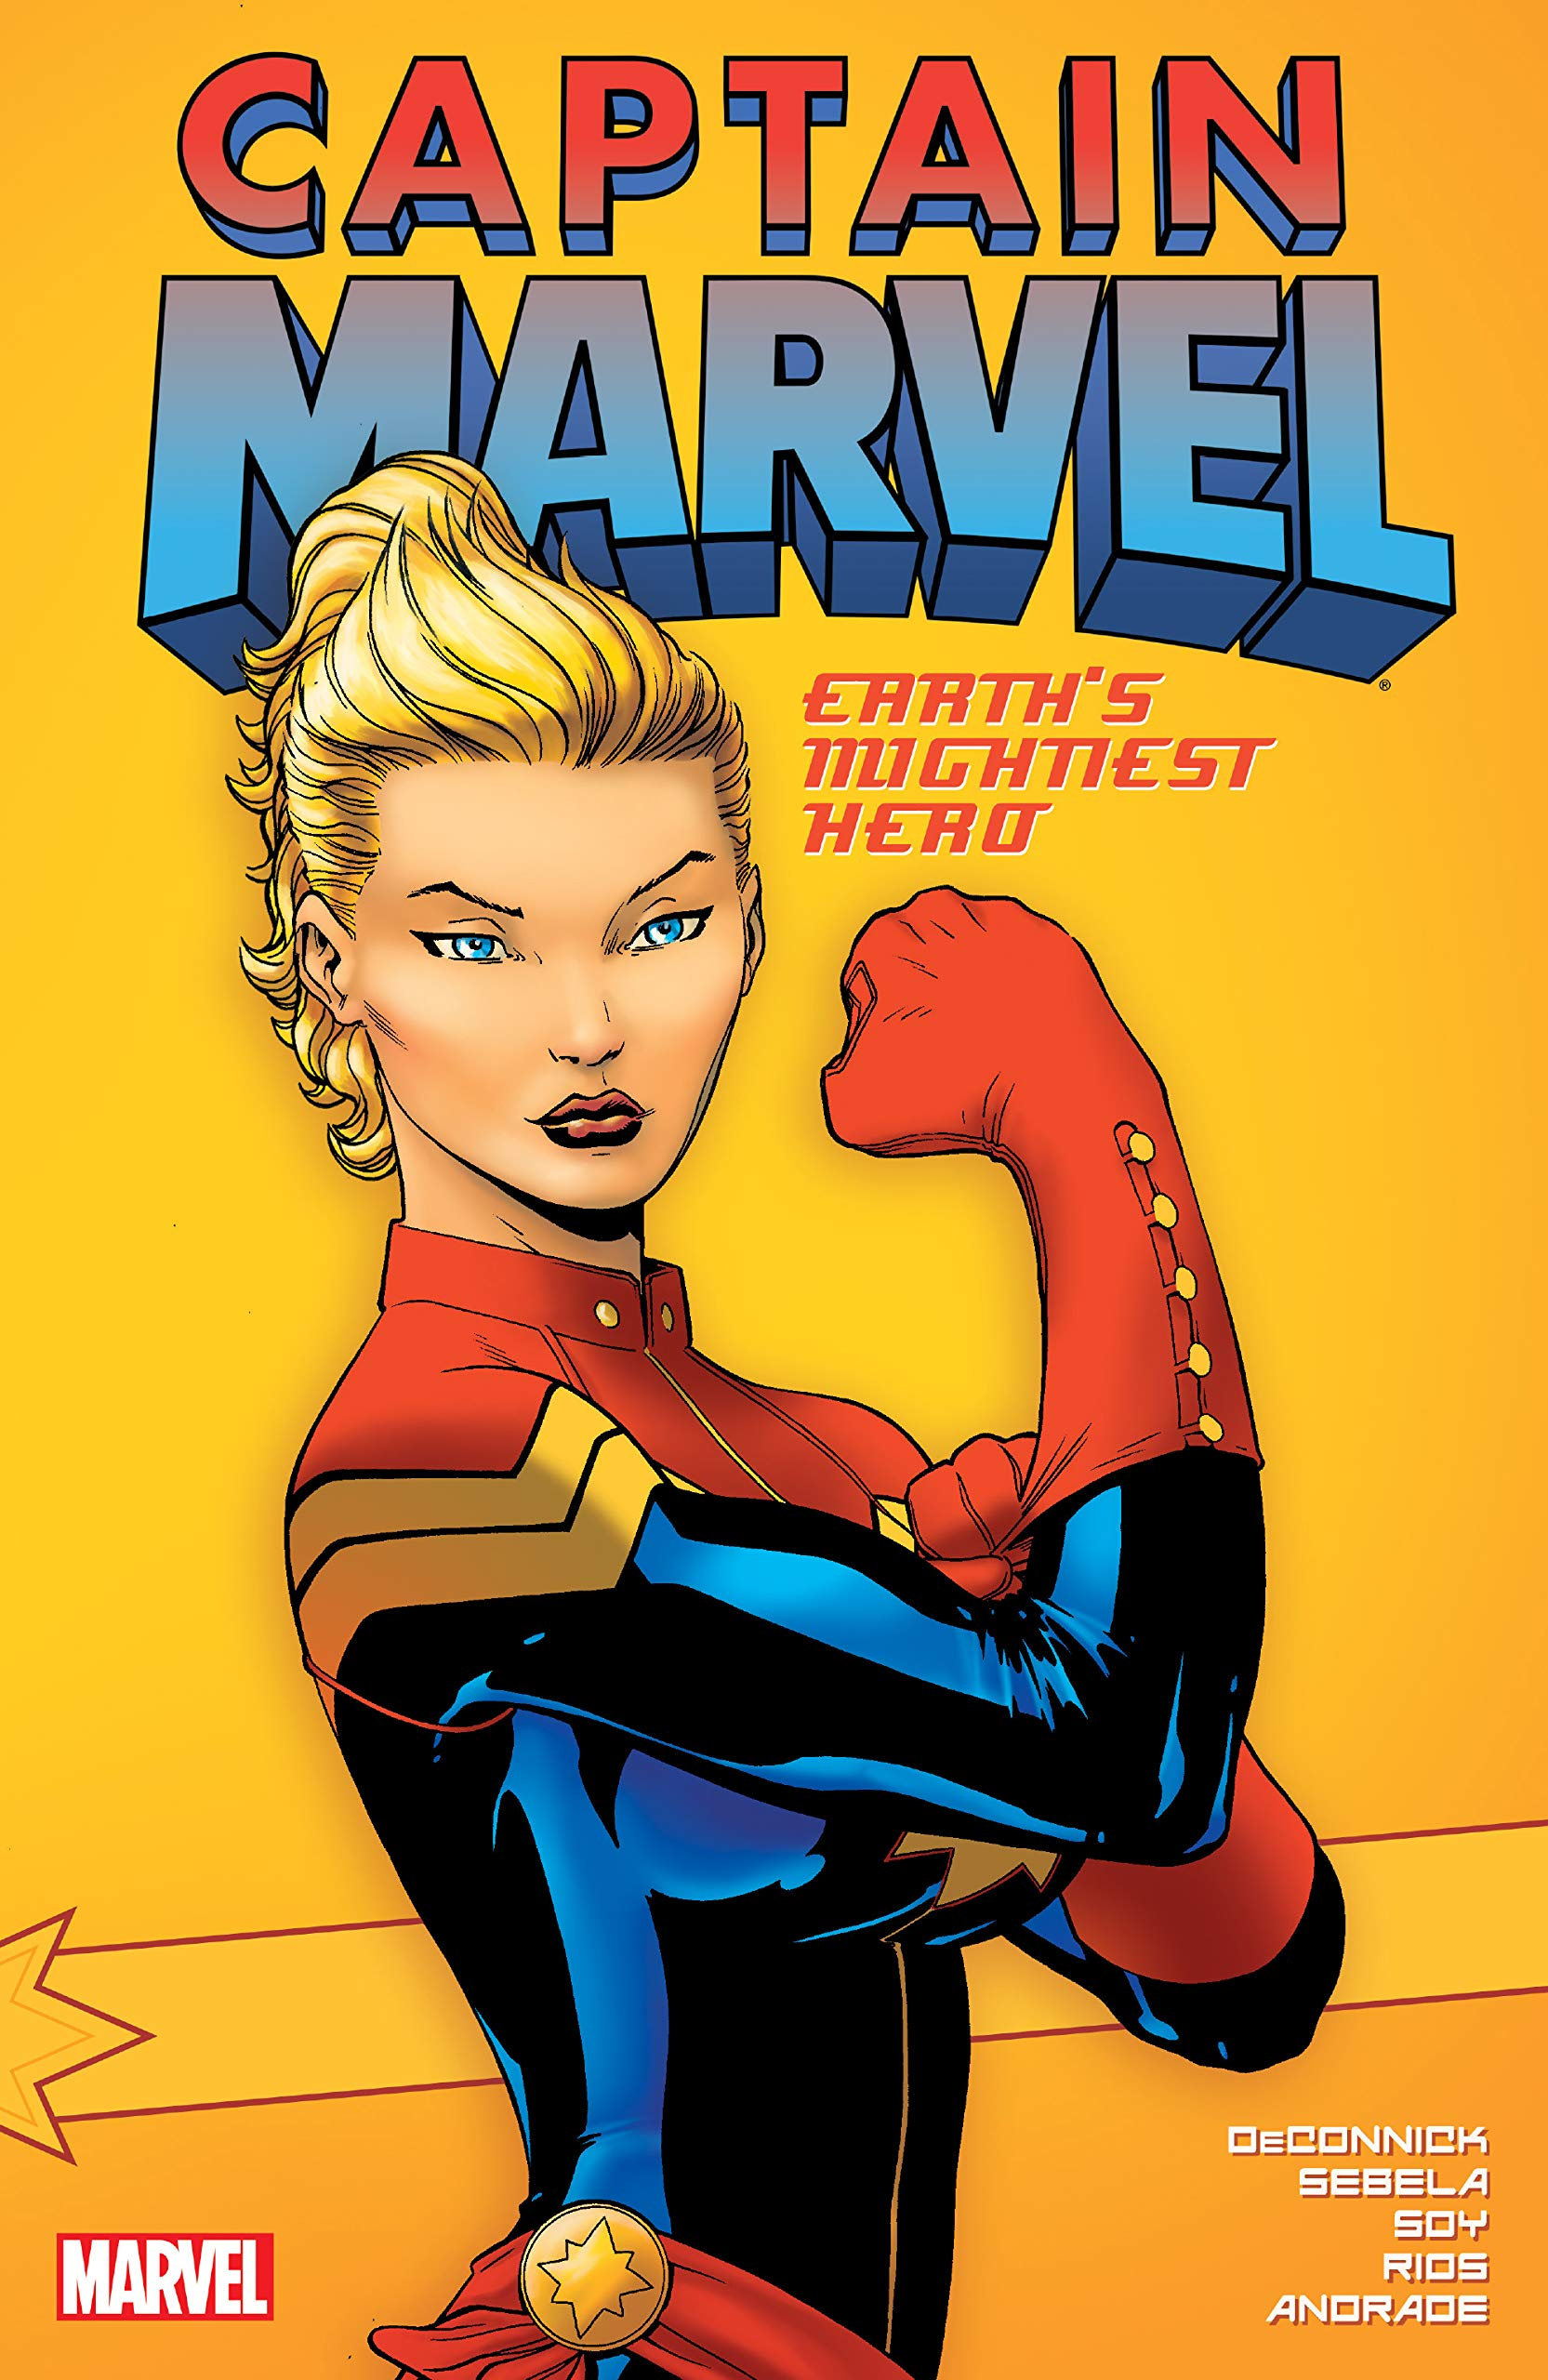 Captain Marvel Earths Mightiest